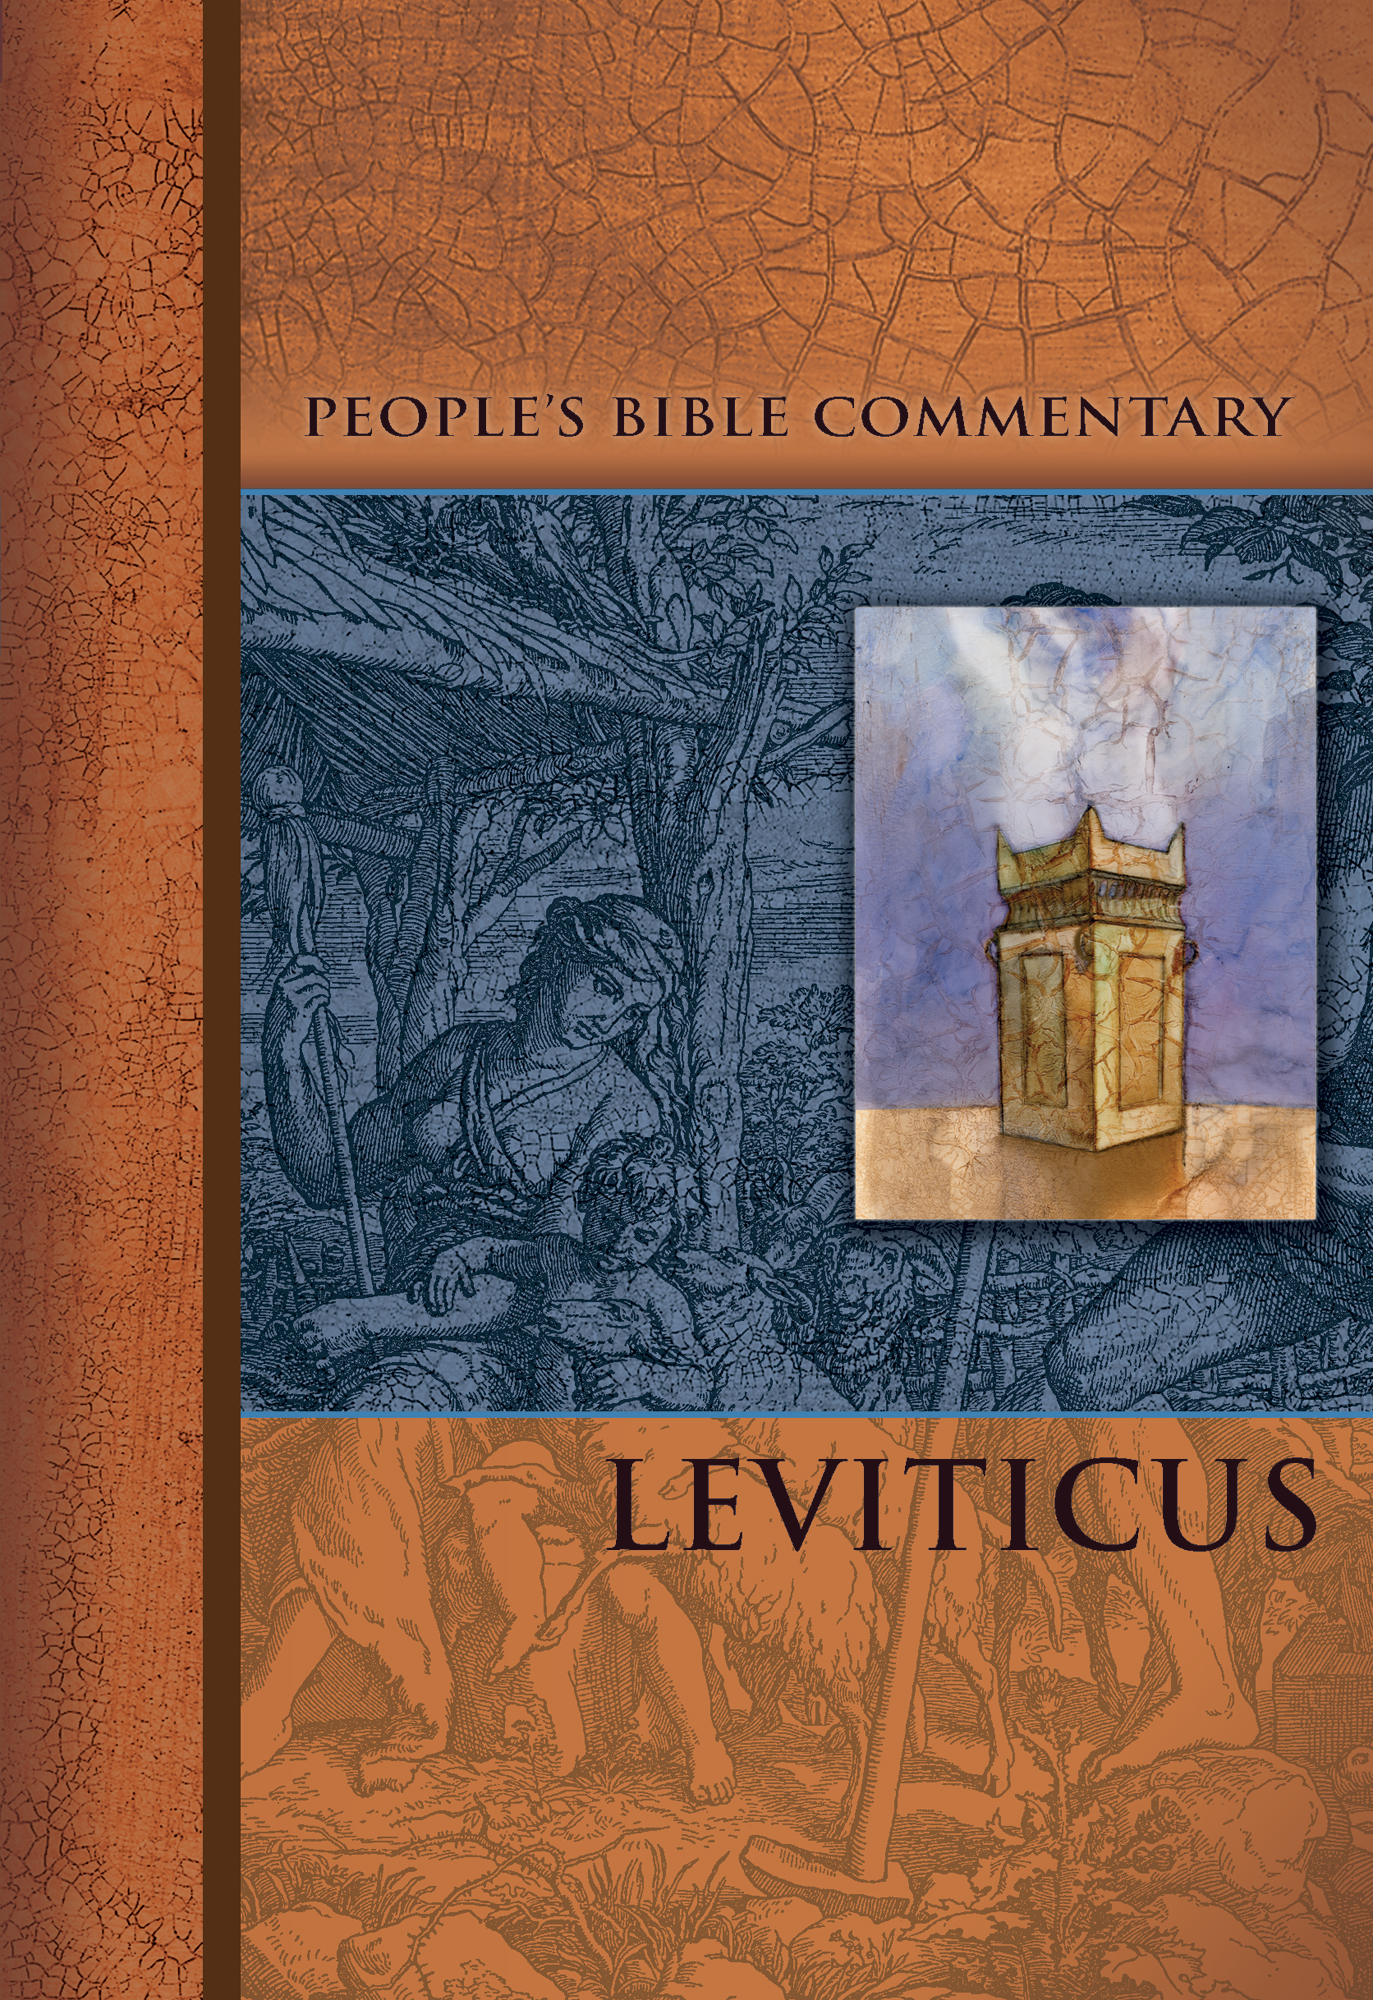 Leviticus (The Peoples Bible)